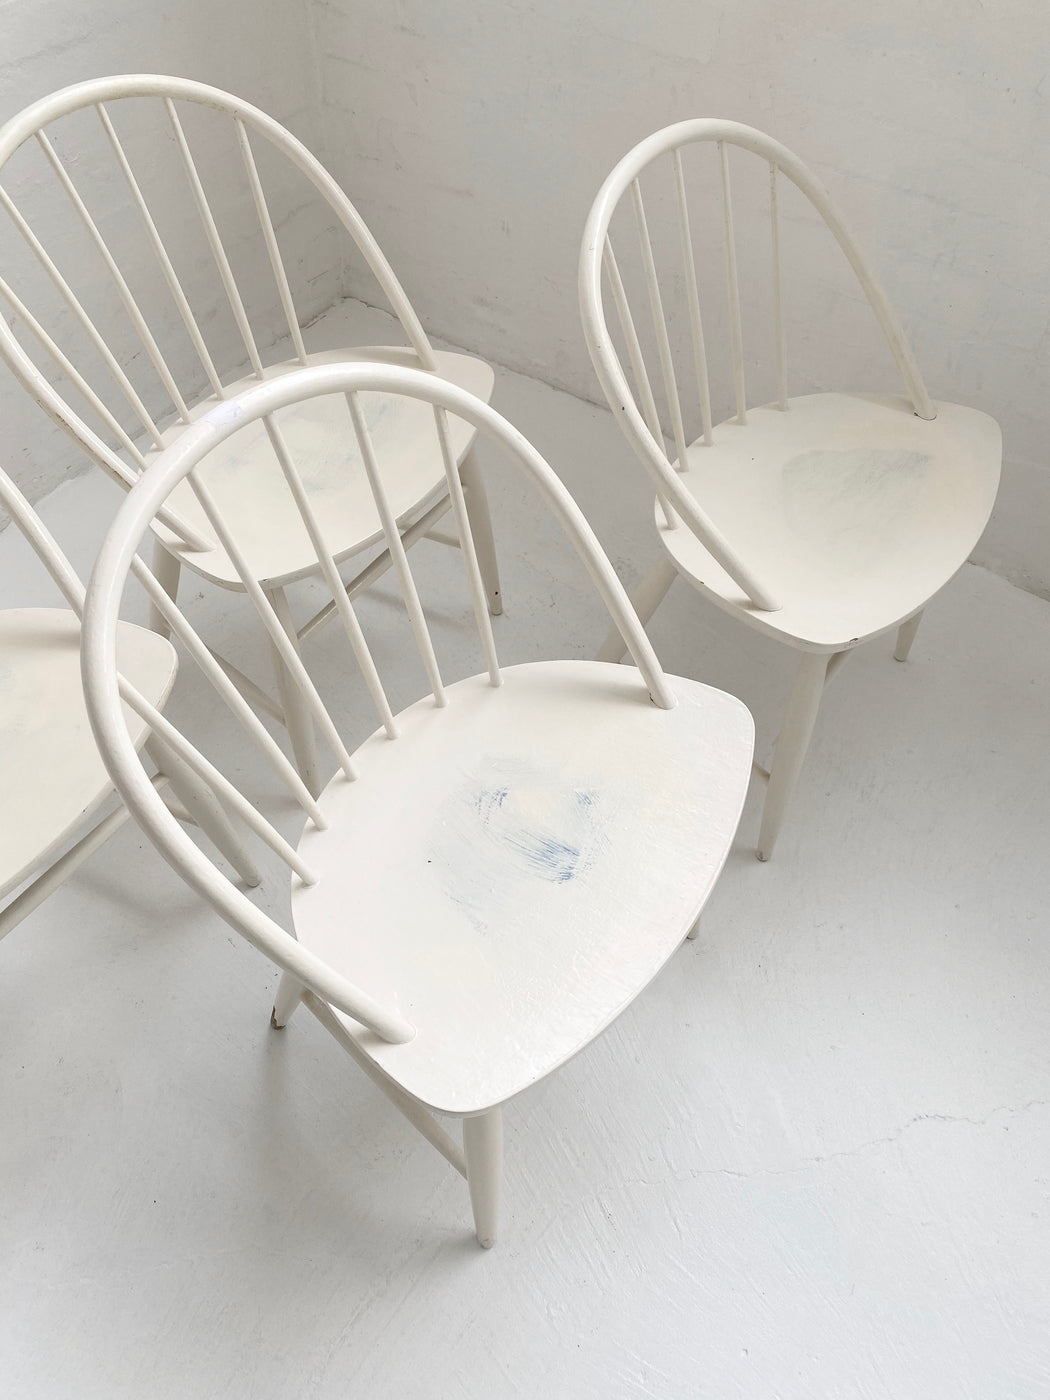 Illum Wikkelso Chairs